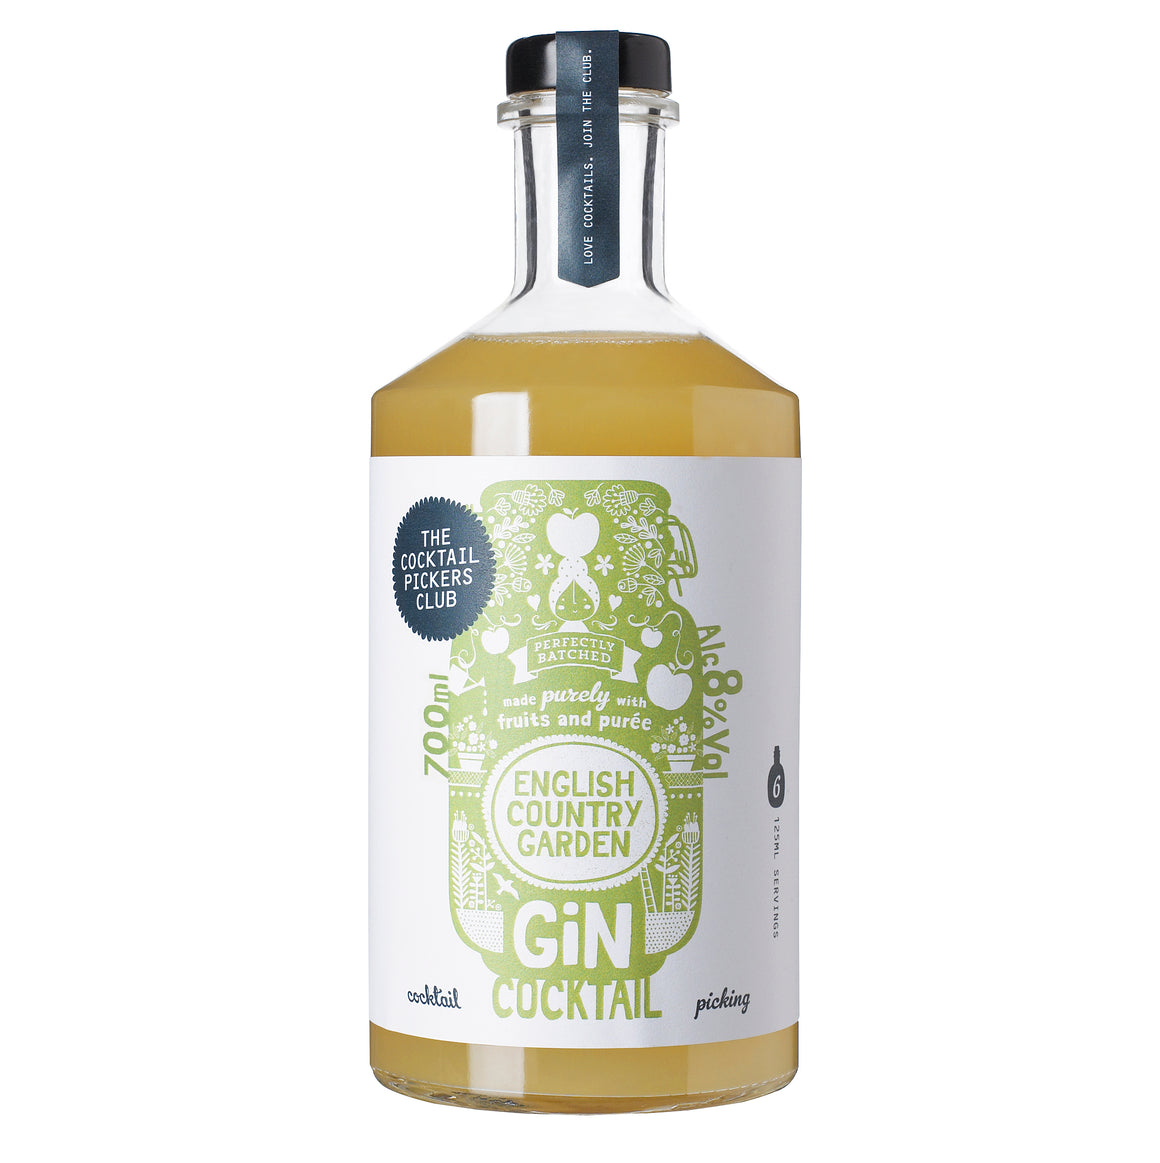 English Country Garden Gin Cocktail 3x 700ml